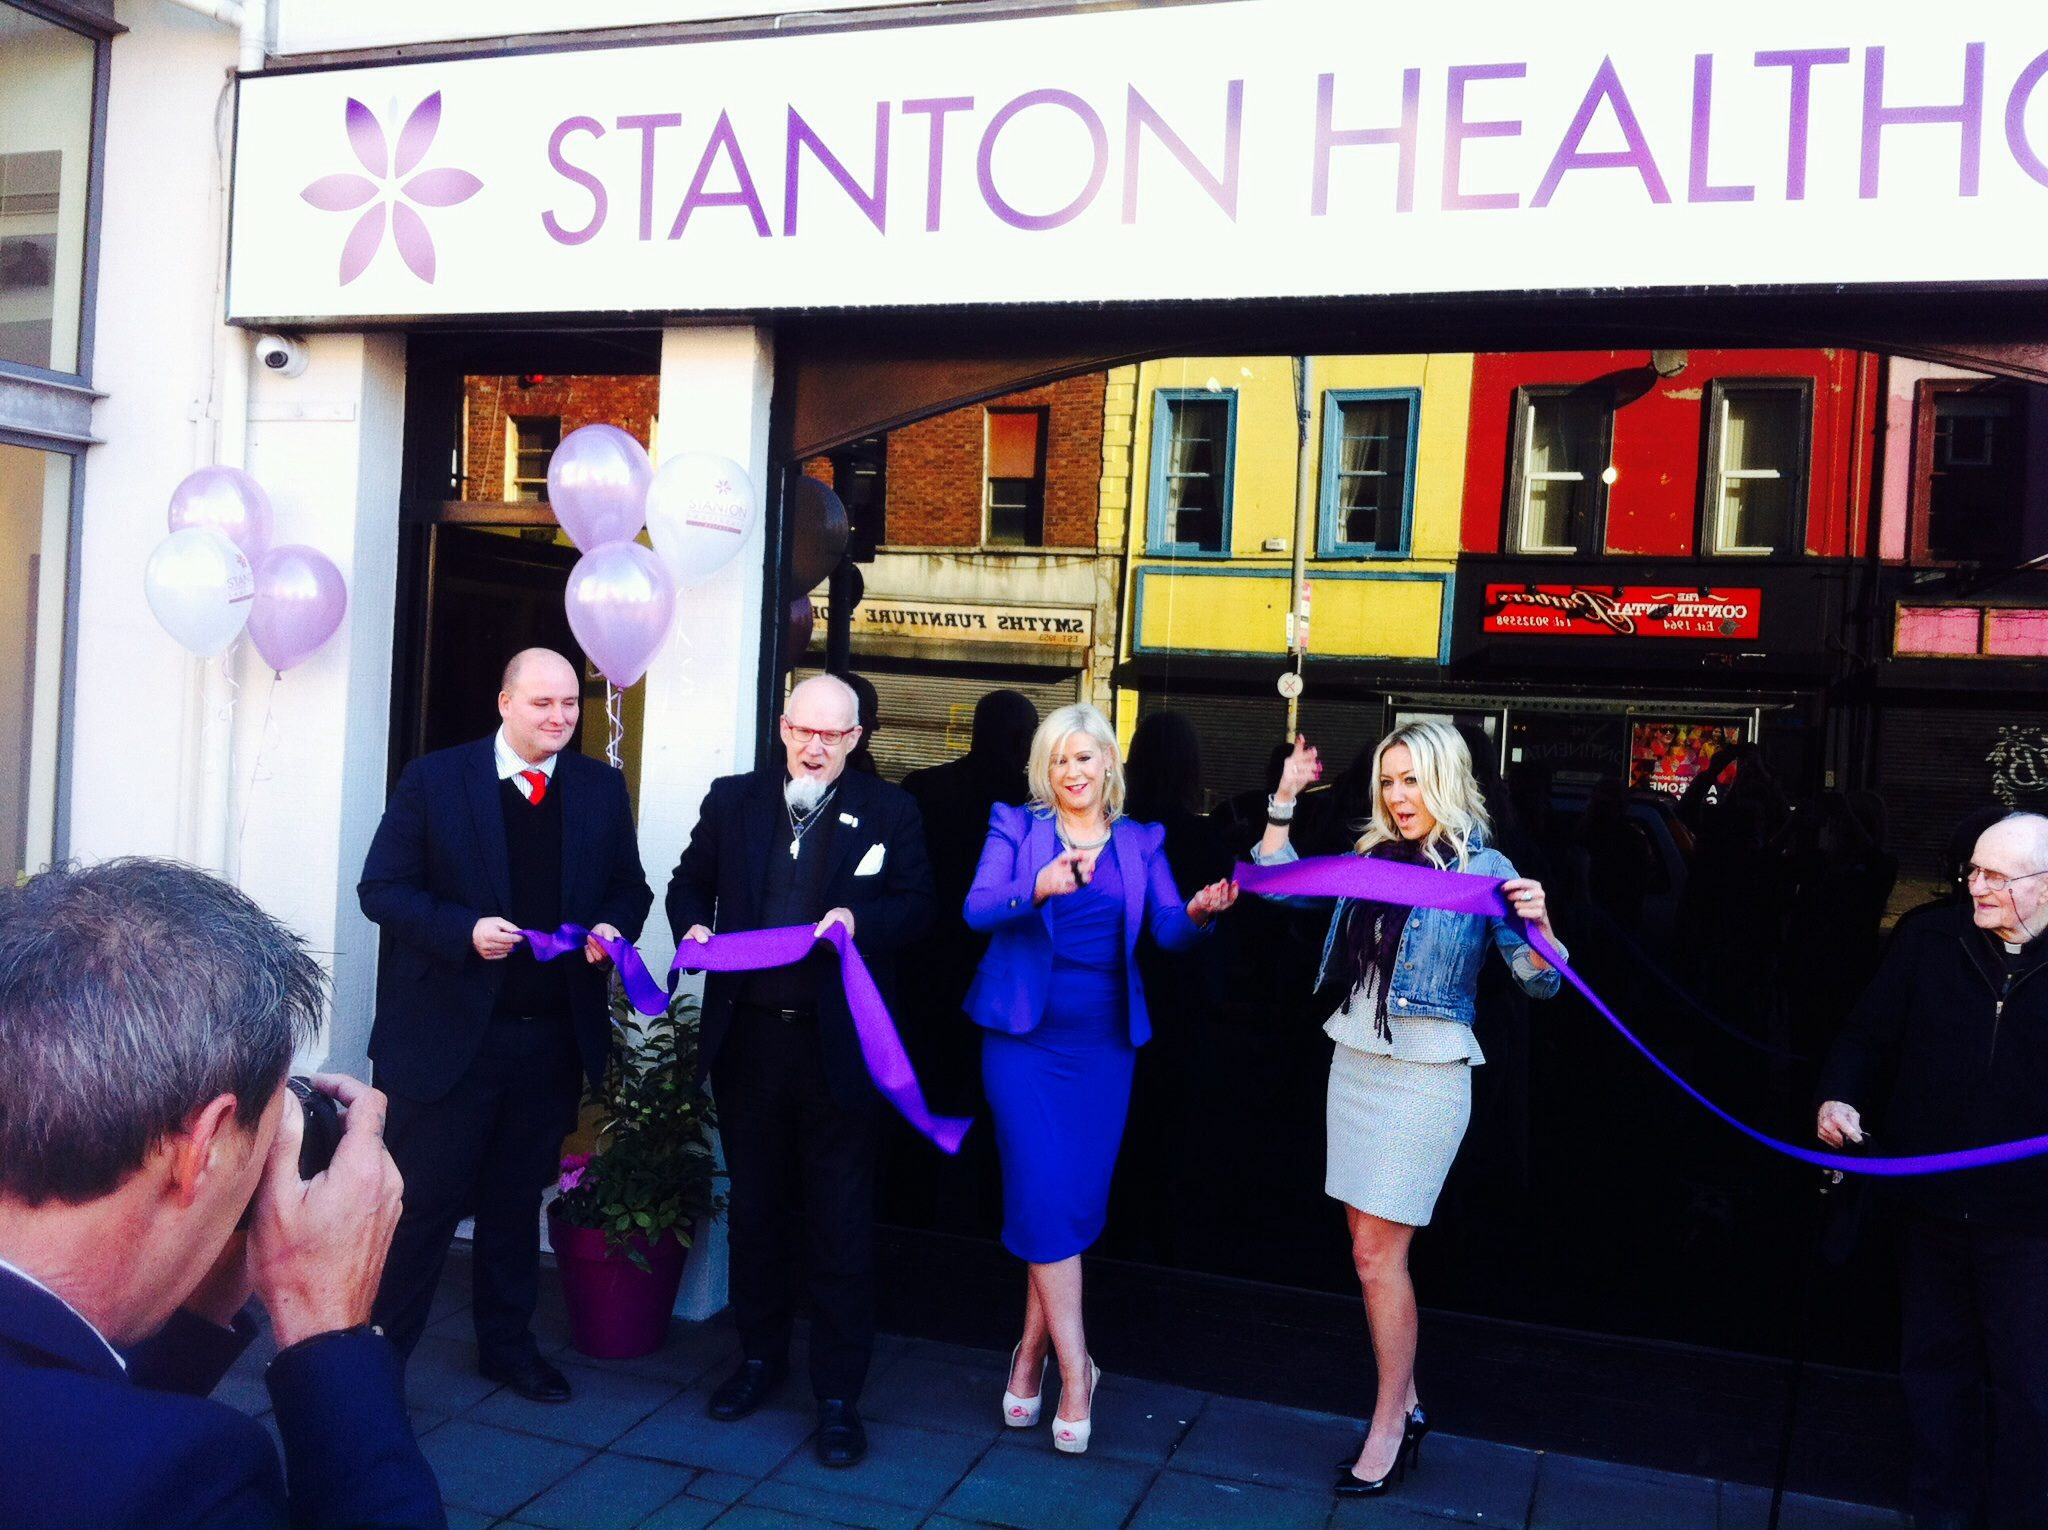 And the purple ribbon has been cut! Another life-affirming clinic is open and offering care to expectant mothers.